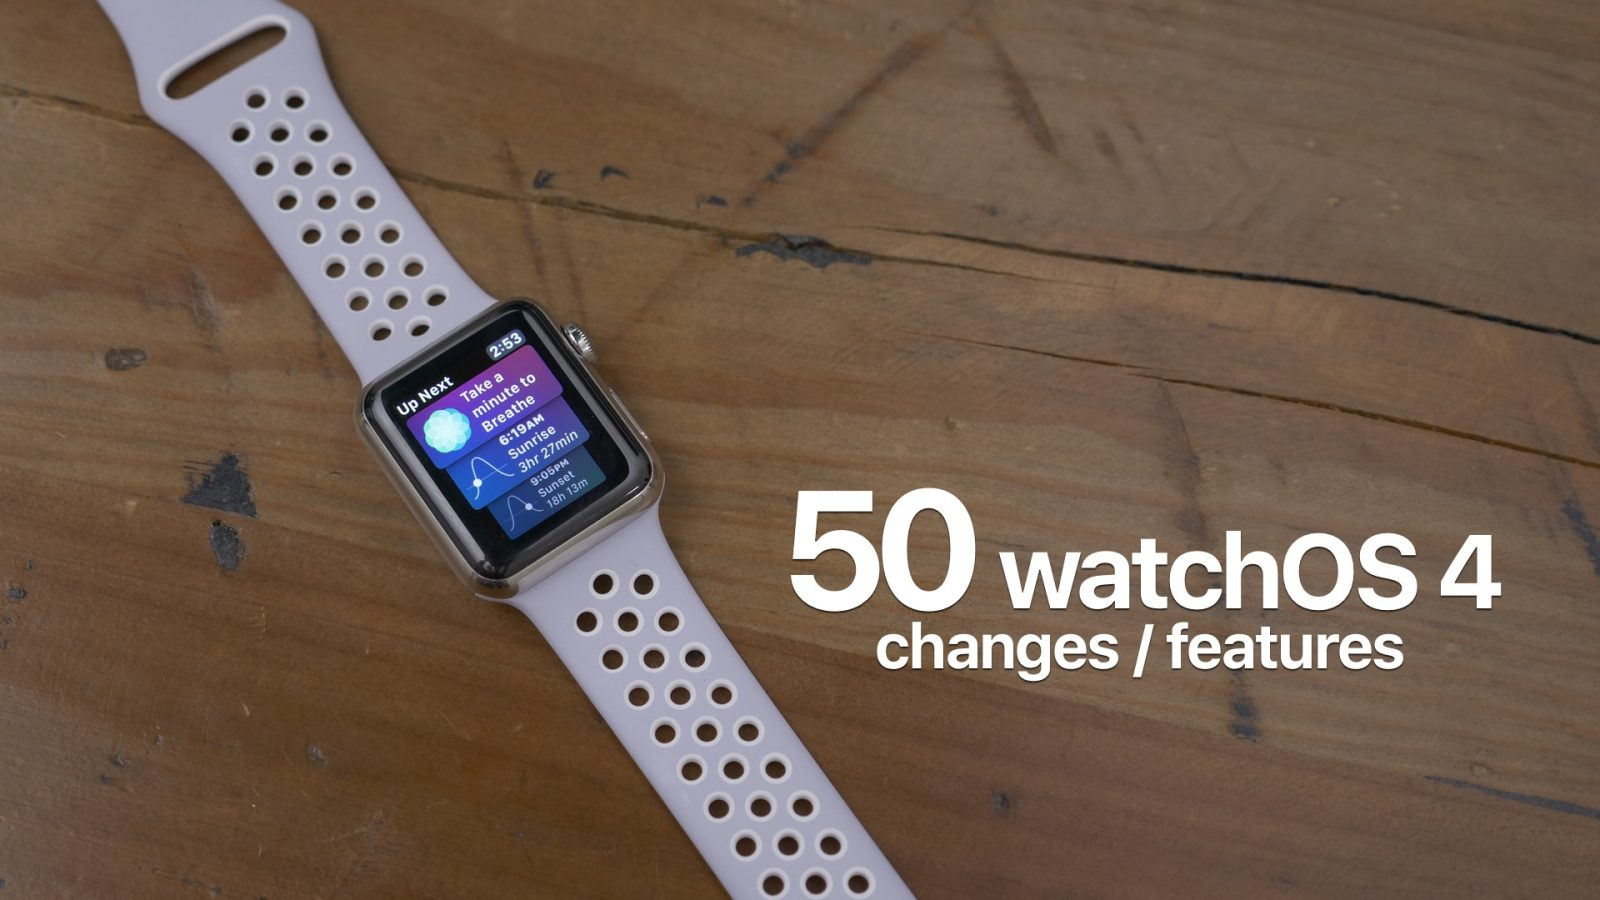 What's new in watchOS 4? Hands-on with 50+ features and changes [Video]